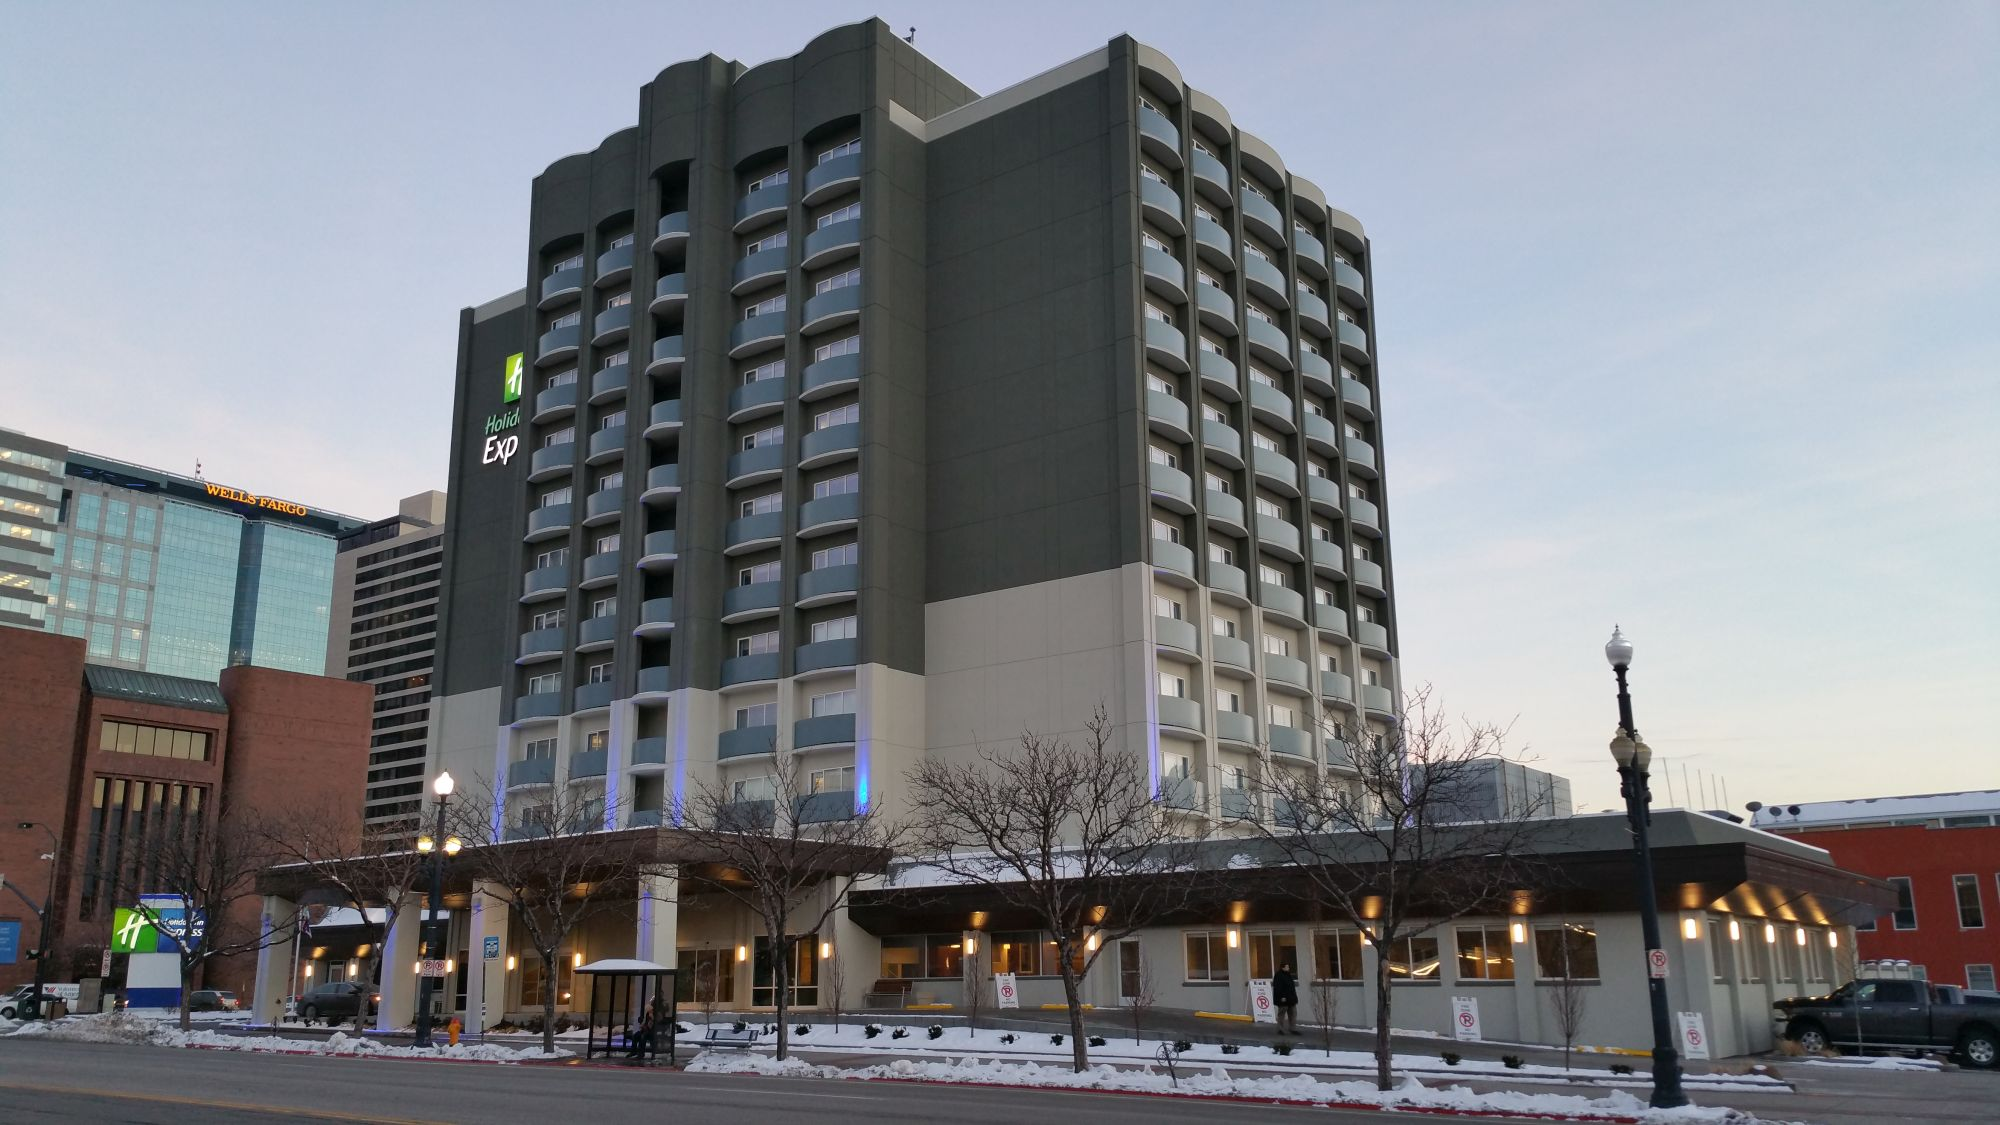 Hotel Review: Holiday Inn Express Salt Lake City Downtown